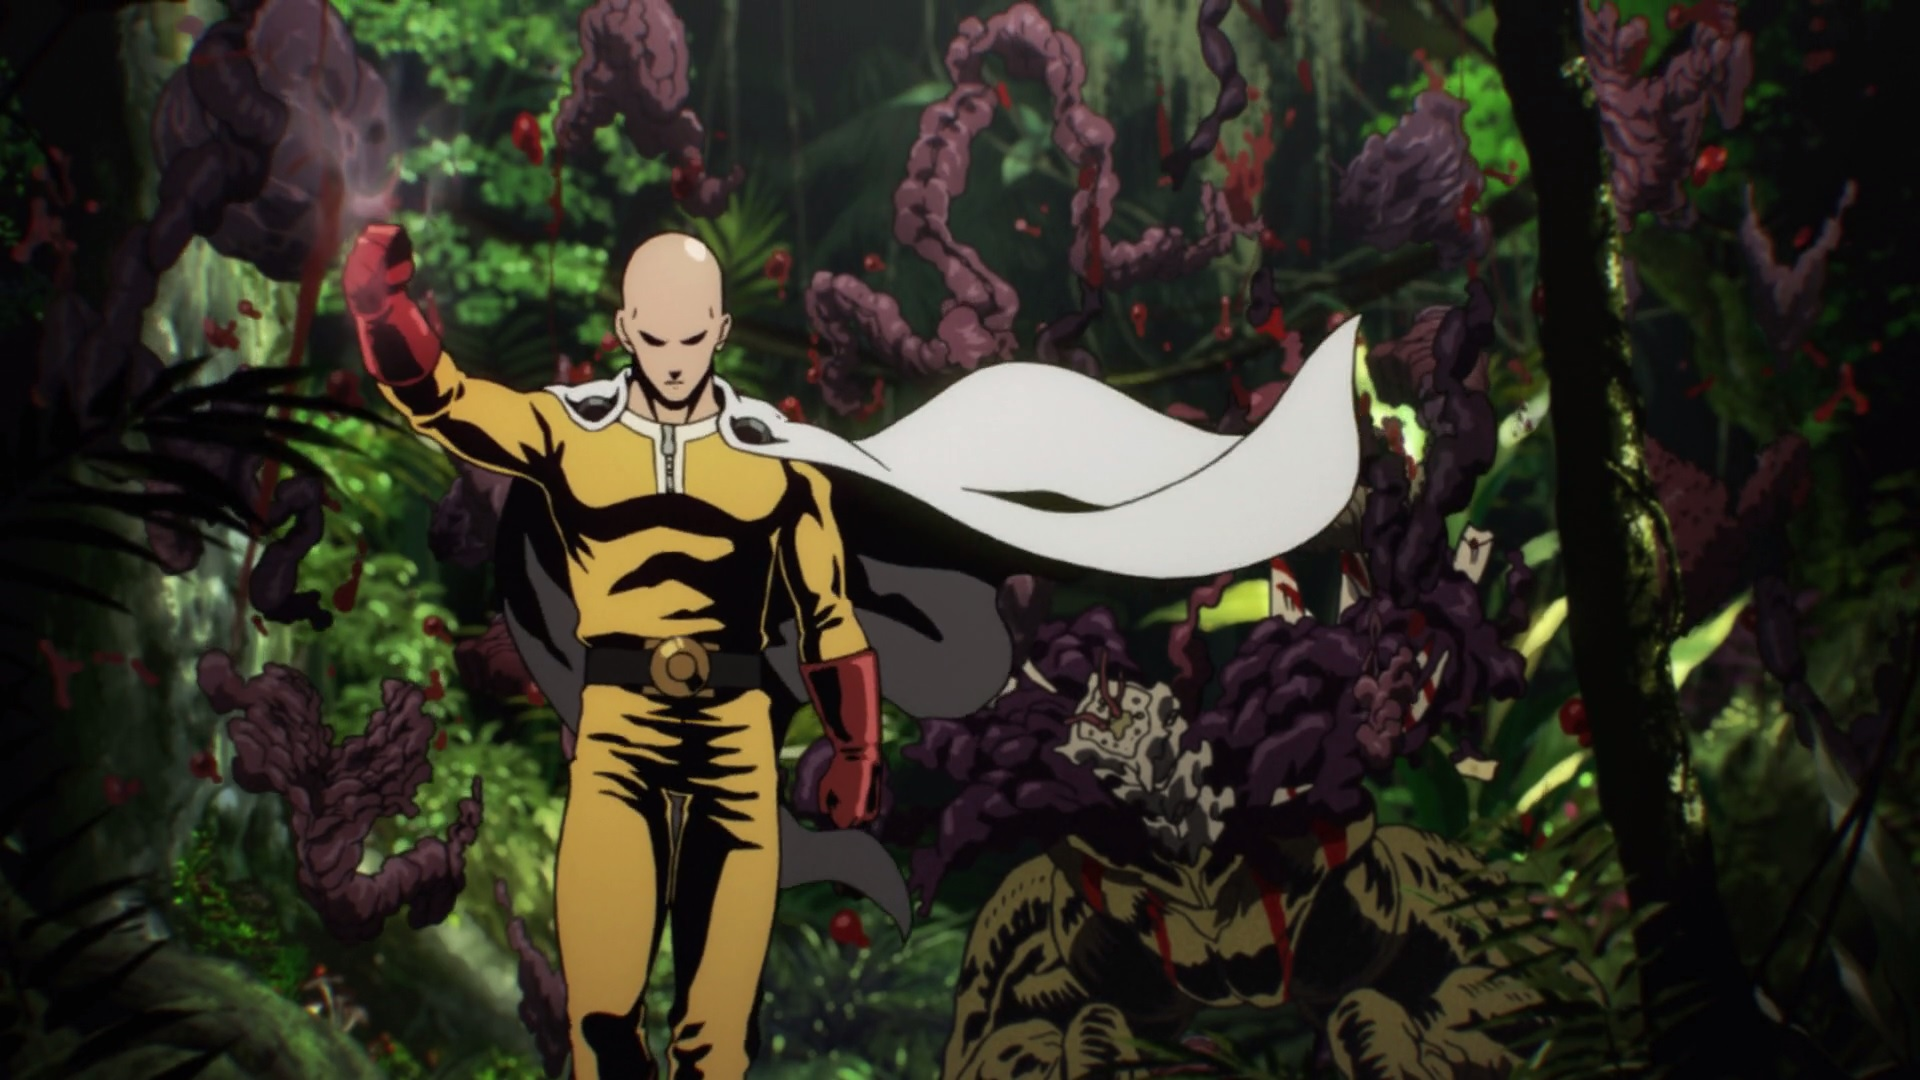 Free Download Saitama One Punch Man Images Saitama Hd Wallpaper